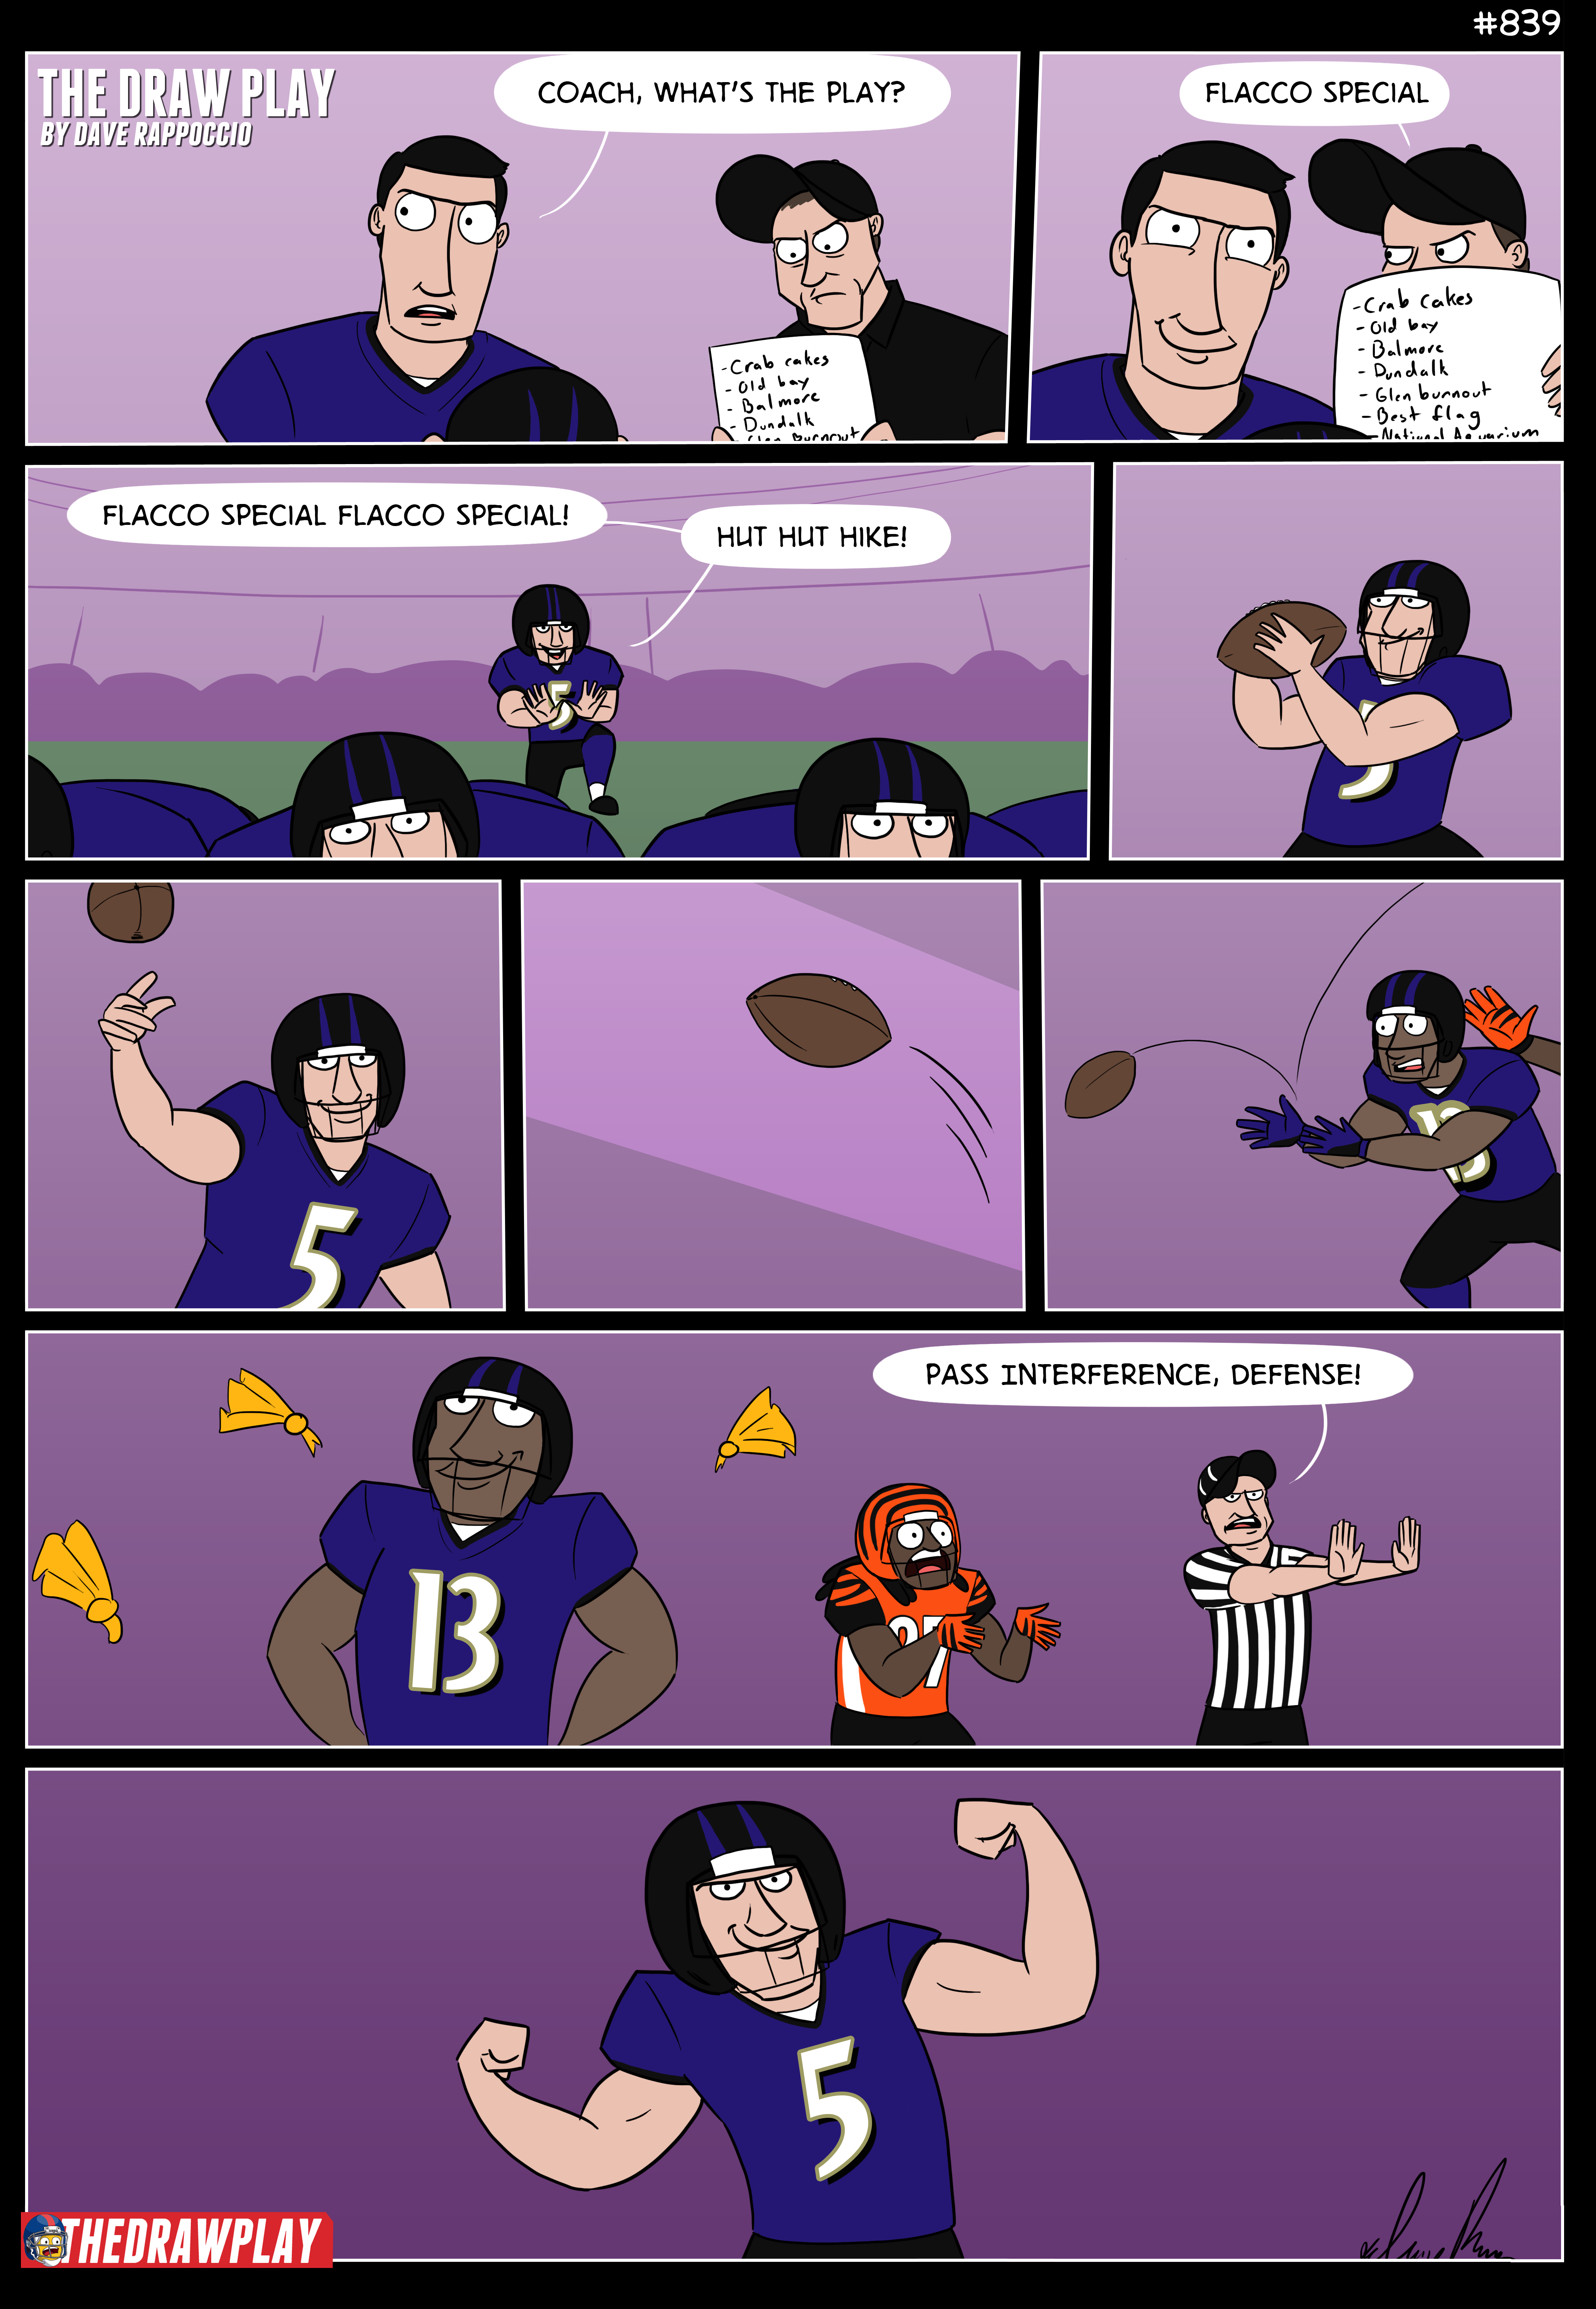 IS JOE FLACCO MEDIOCRE?